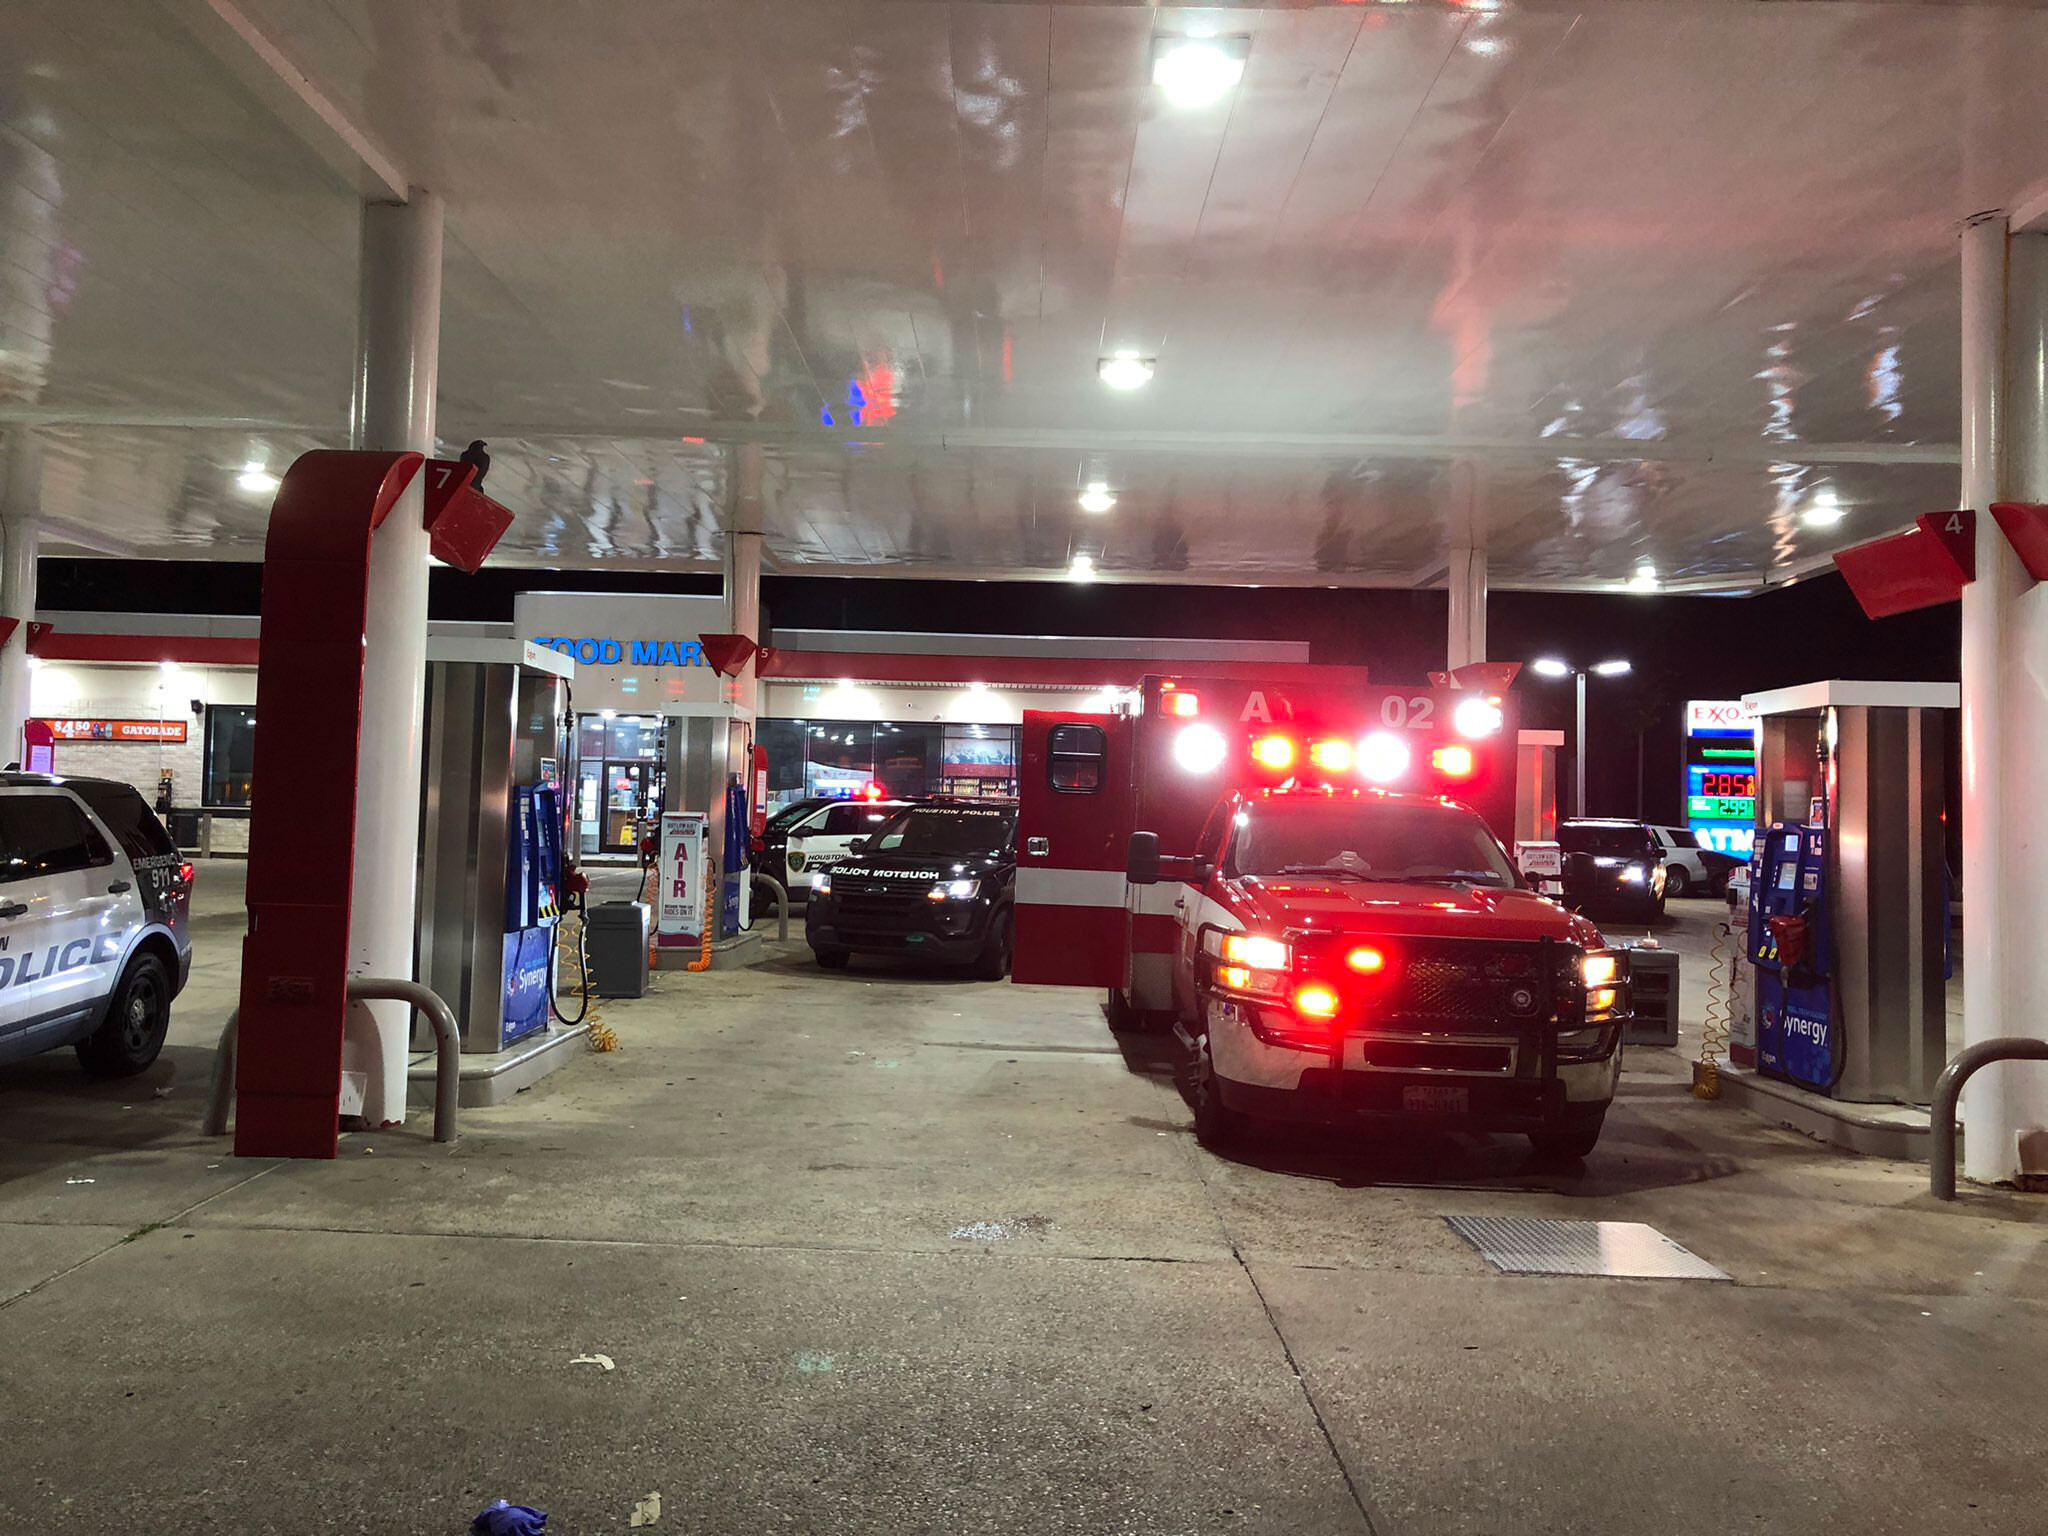 <i>Houston Police Department</i><br/>Houston Fire paramedics were taking a hit-and-run victim to the hospital when they were blocked.